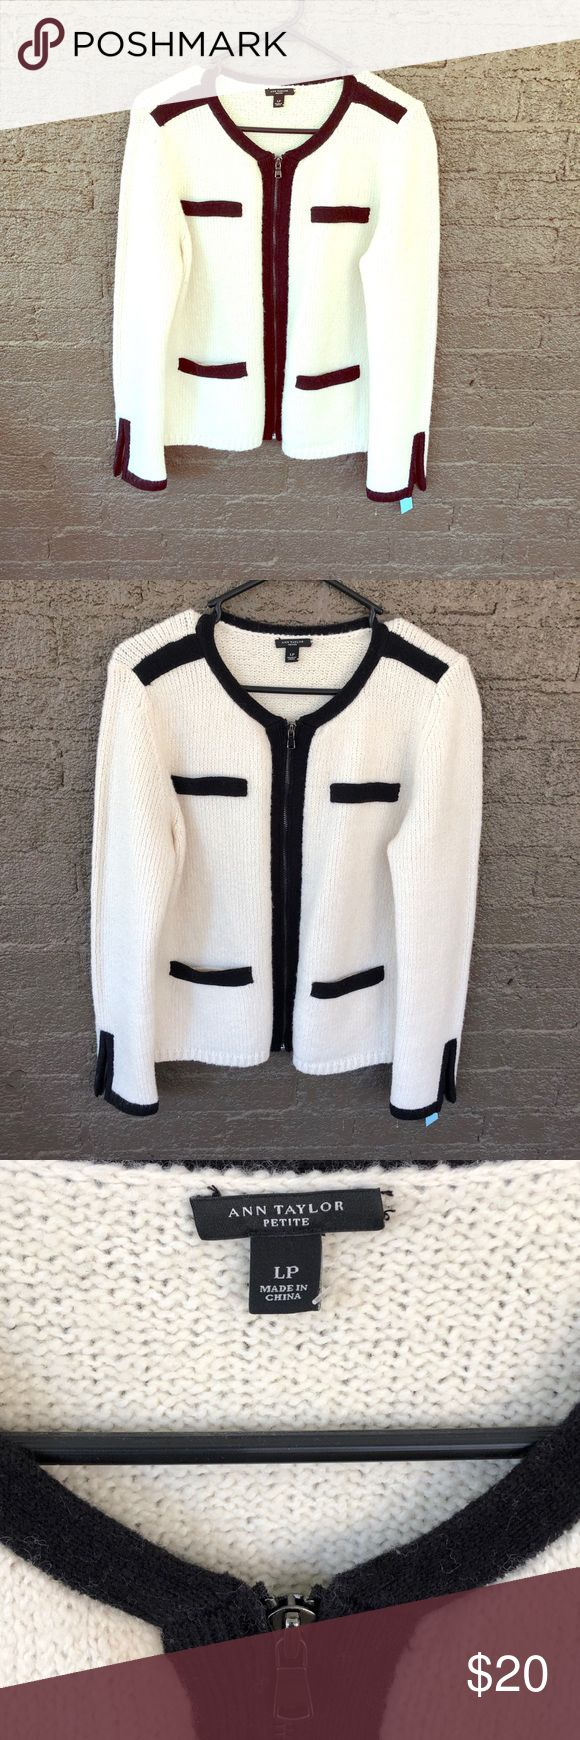 Ann Taylor Petite Cardigan with Zipper Great condition, hardly worn zipper cardigan. Size L Petite. White with black trim. Ann Taylor Sweaters Cardigans